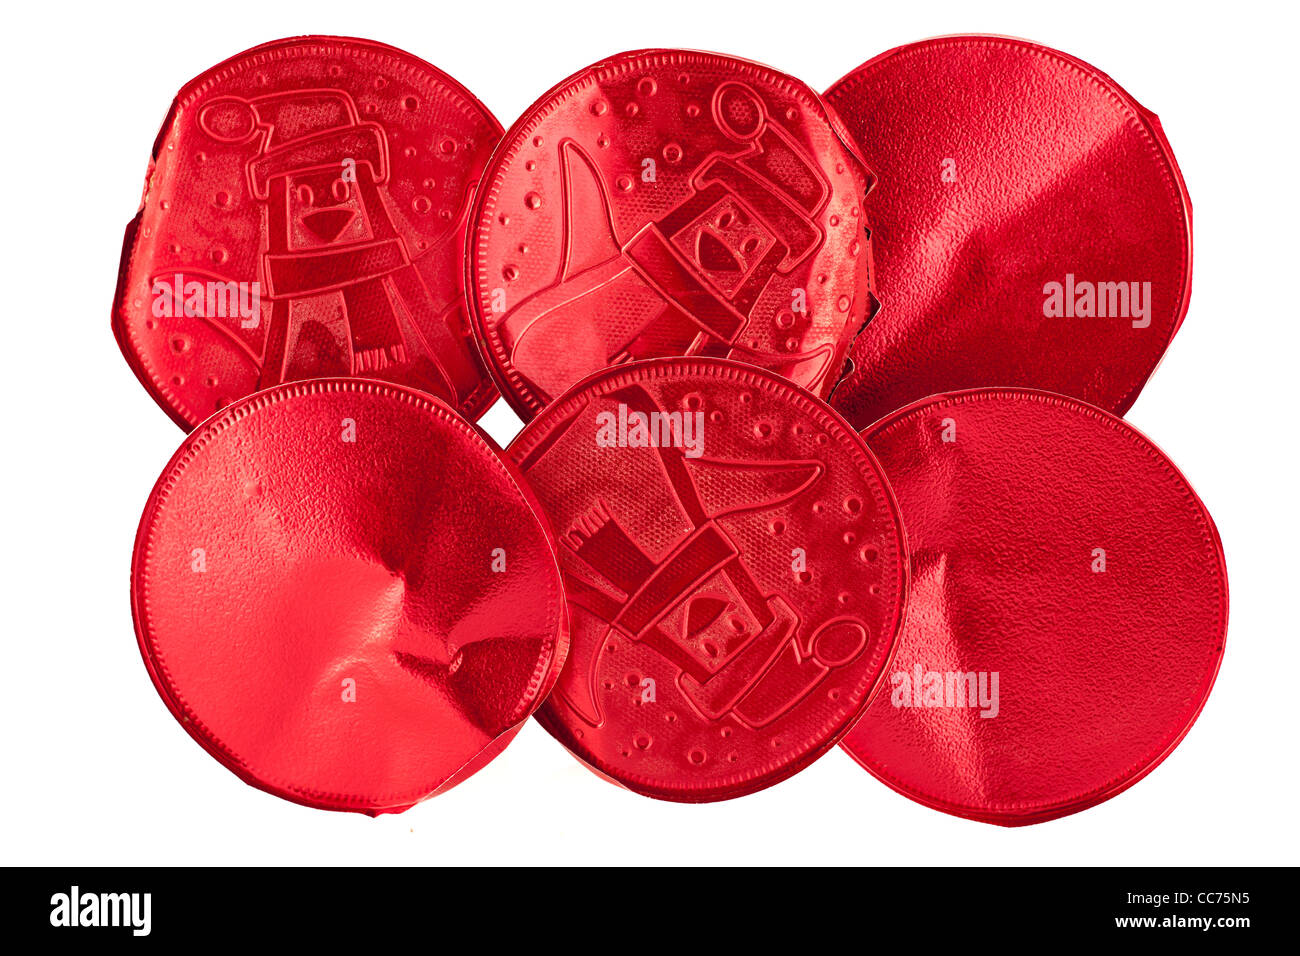 Circular red foil chocolate wrappers - Stock Image